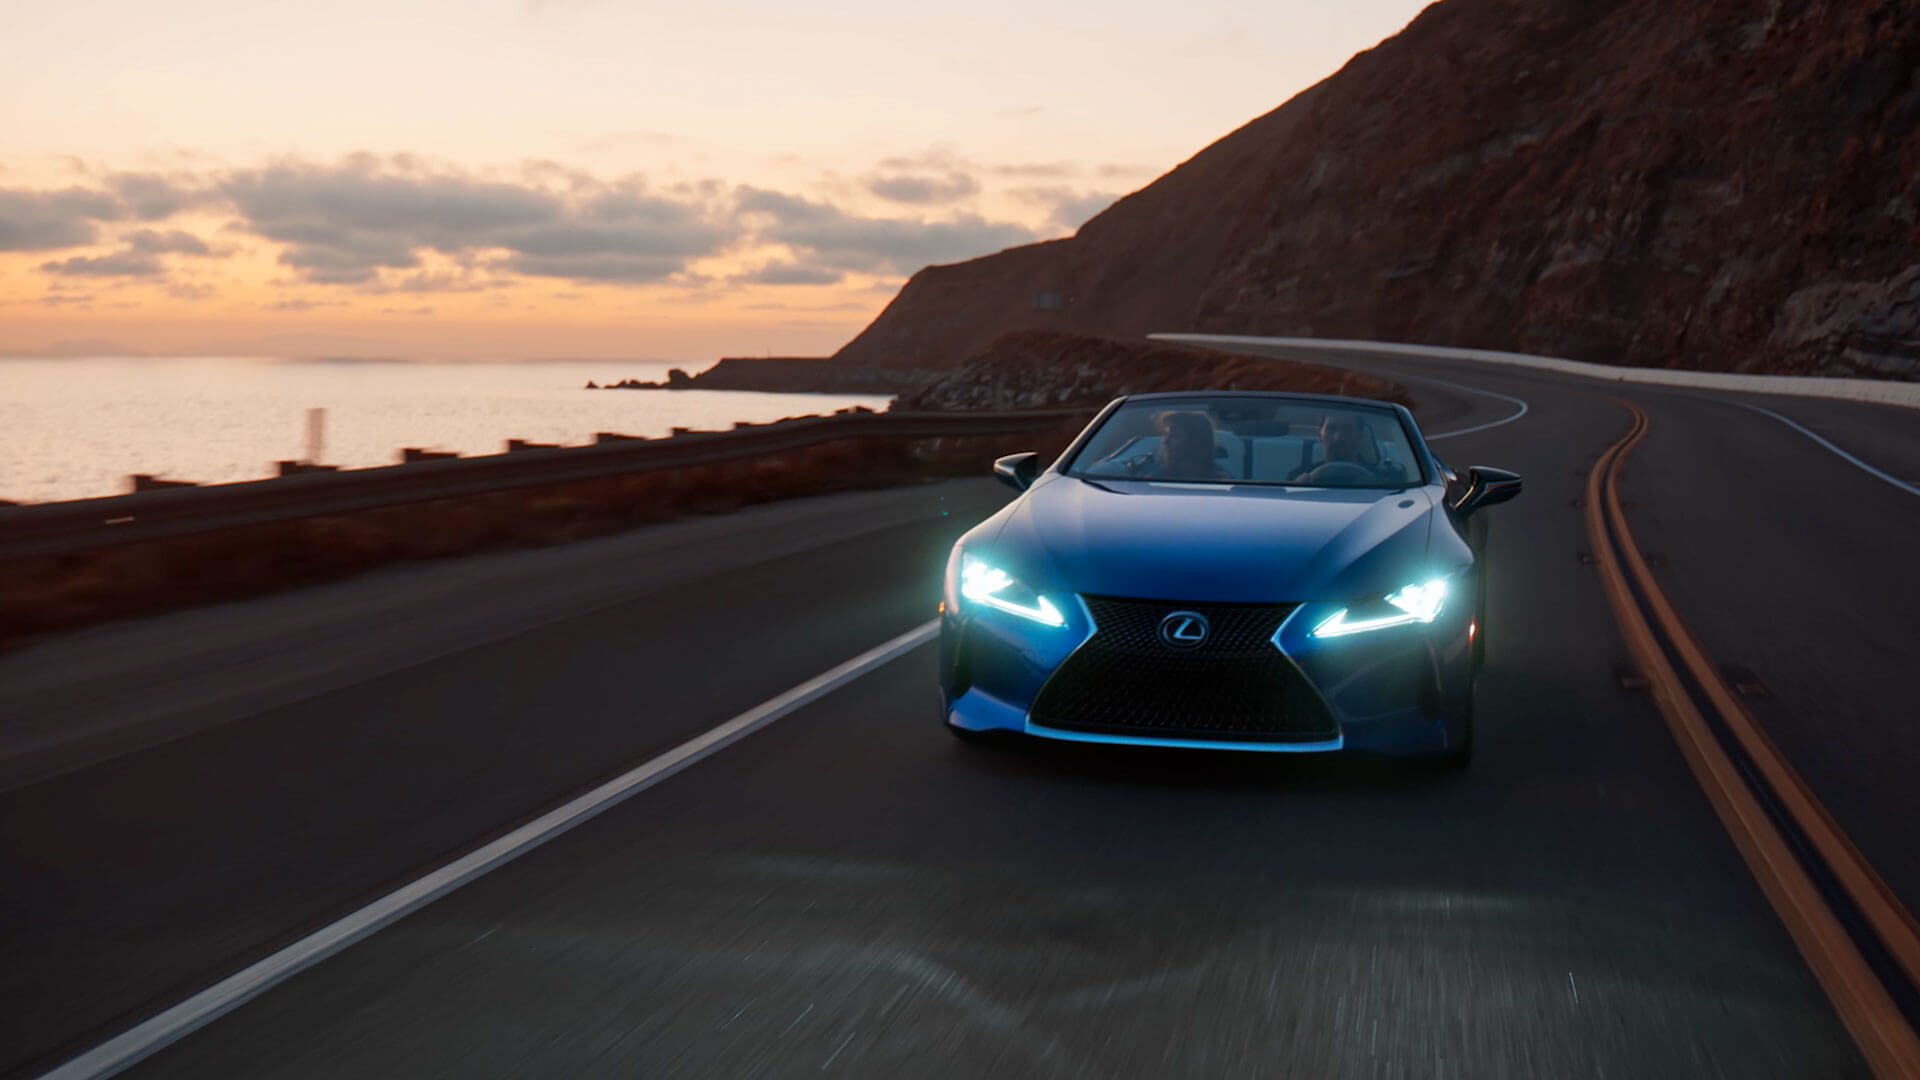 2020 lc convertible video hero